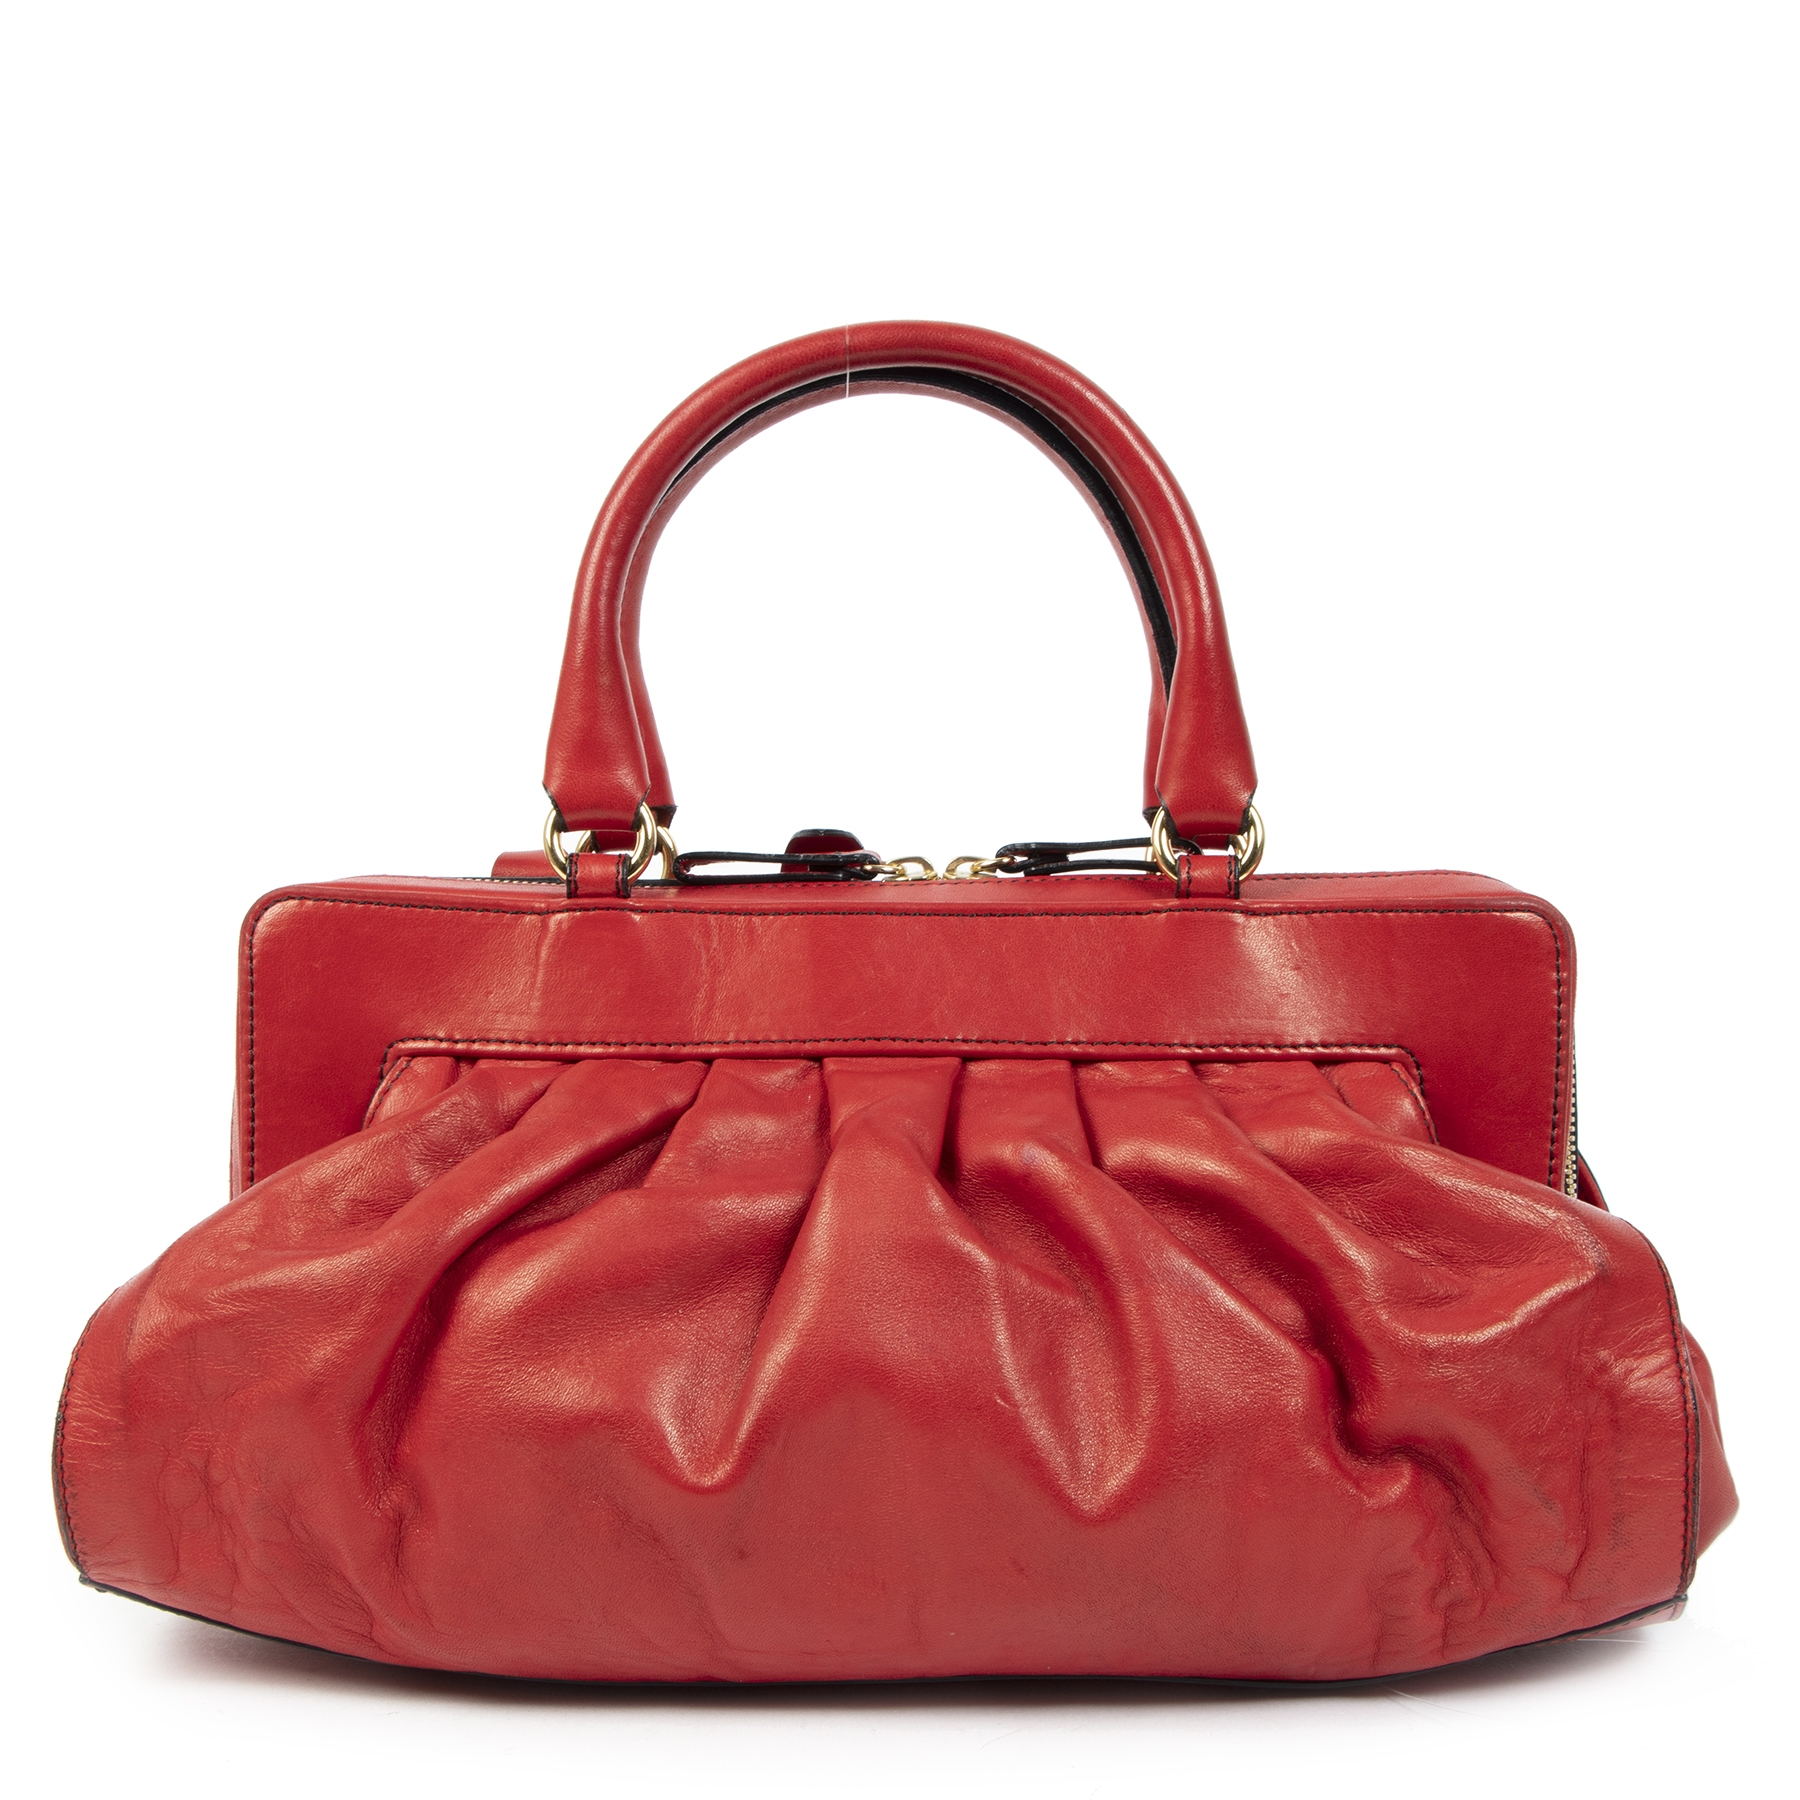 Buy authentic secondhand Valentino bags at labelLOV Antwerp